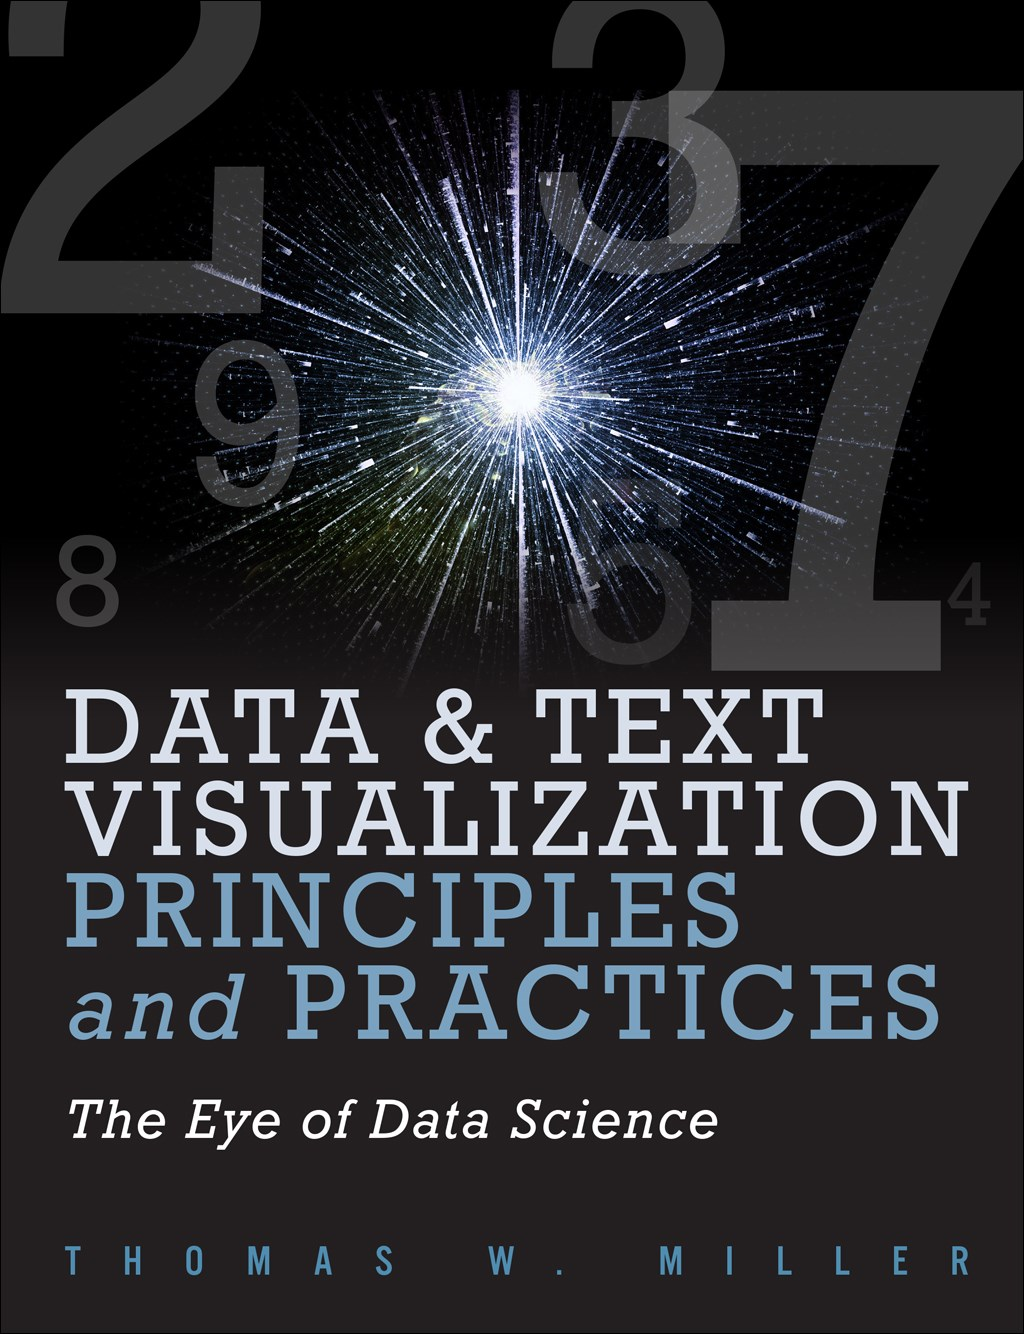 Data Visualization and Text Principles and Practices: The Eye of Data Science